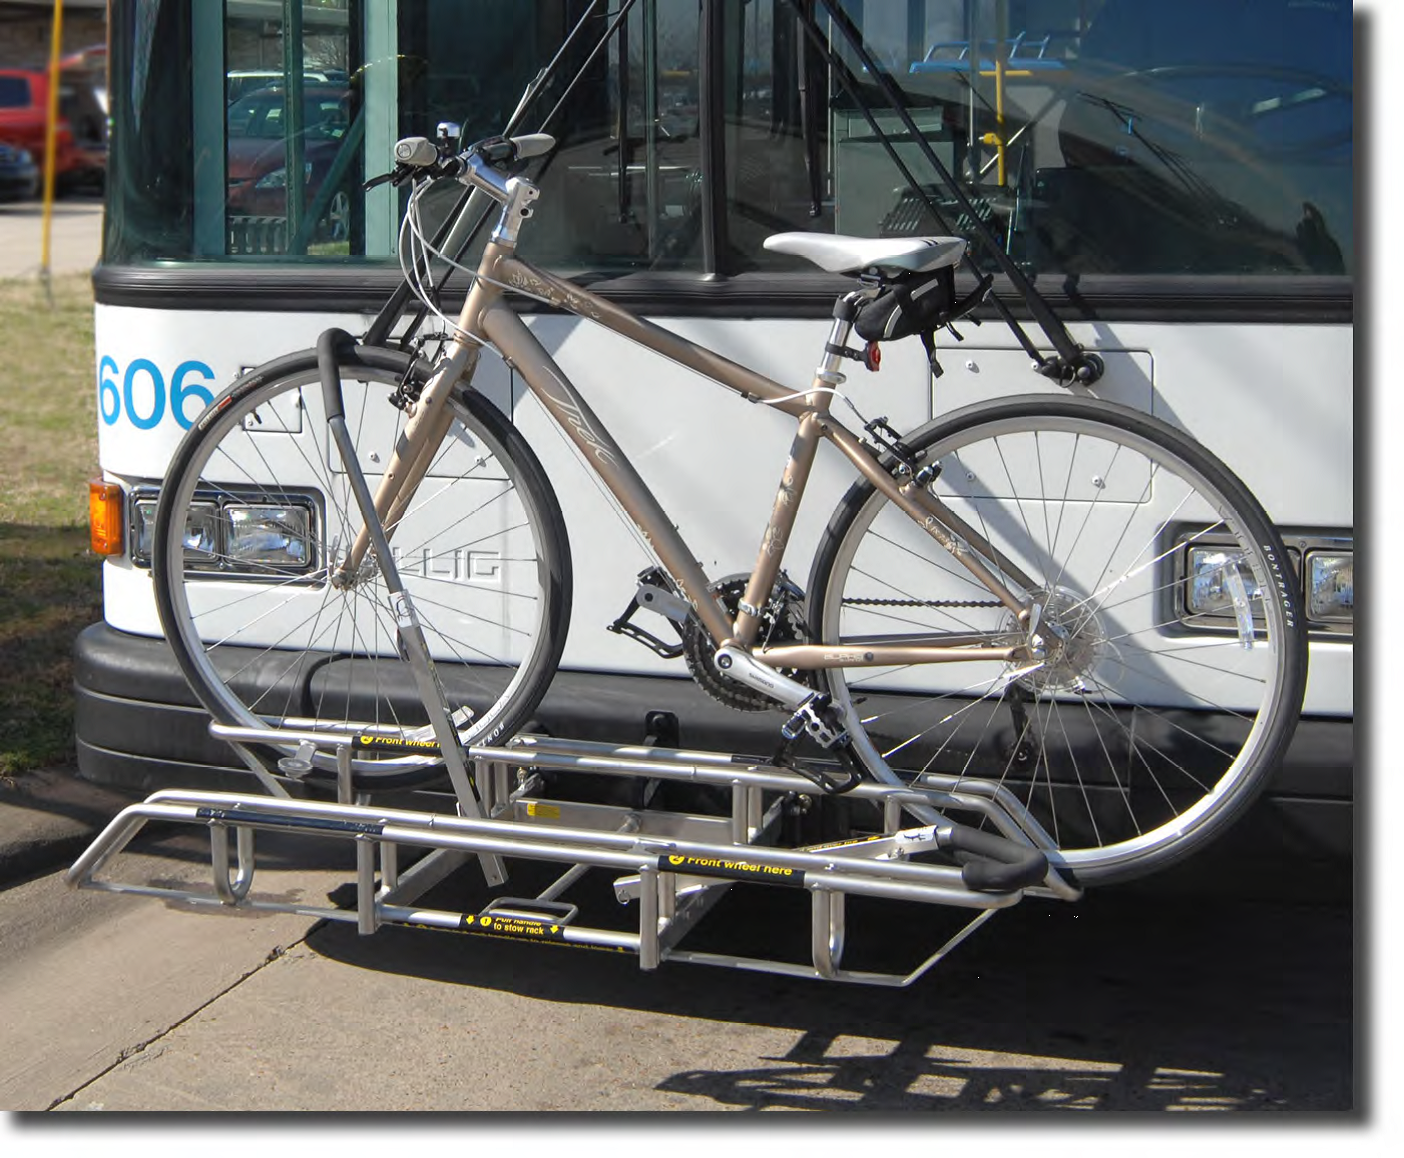 Bike Installed on front of bus